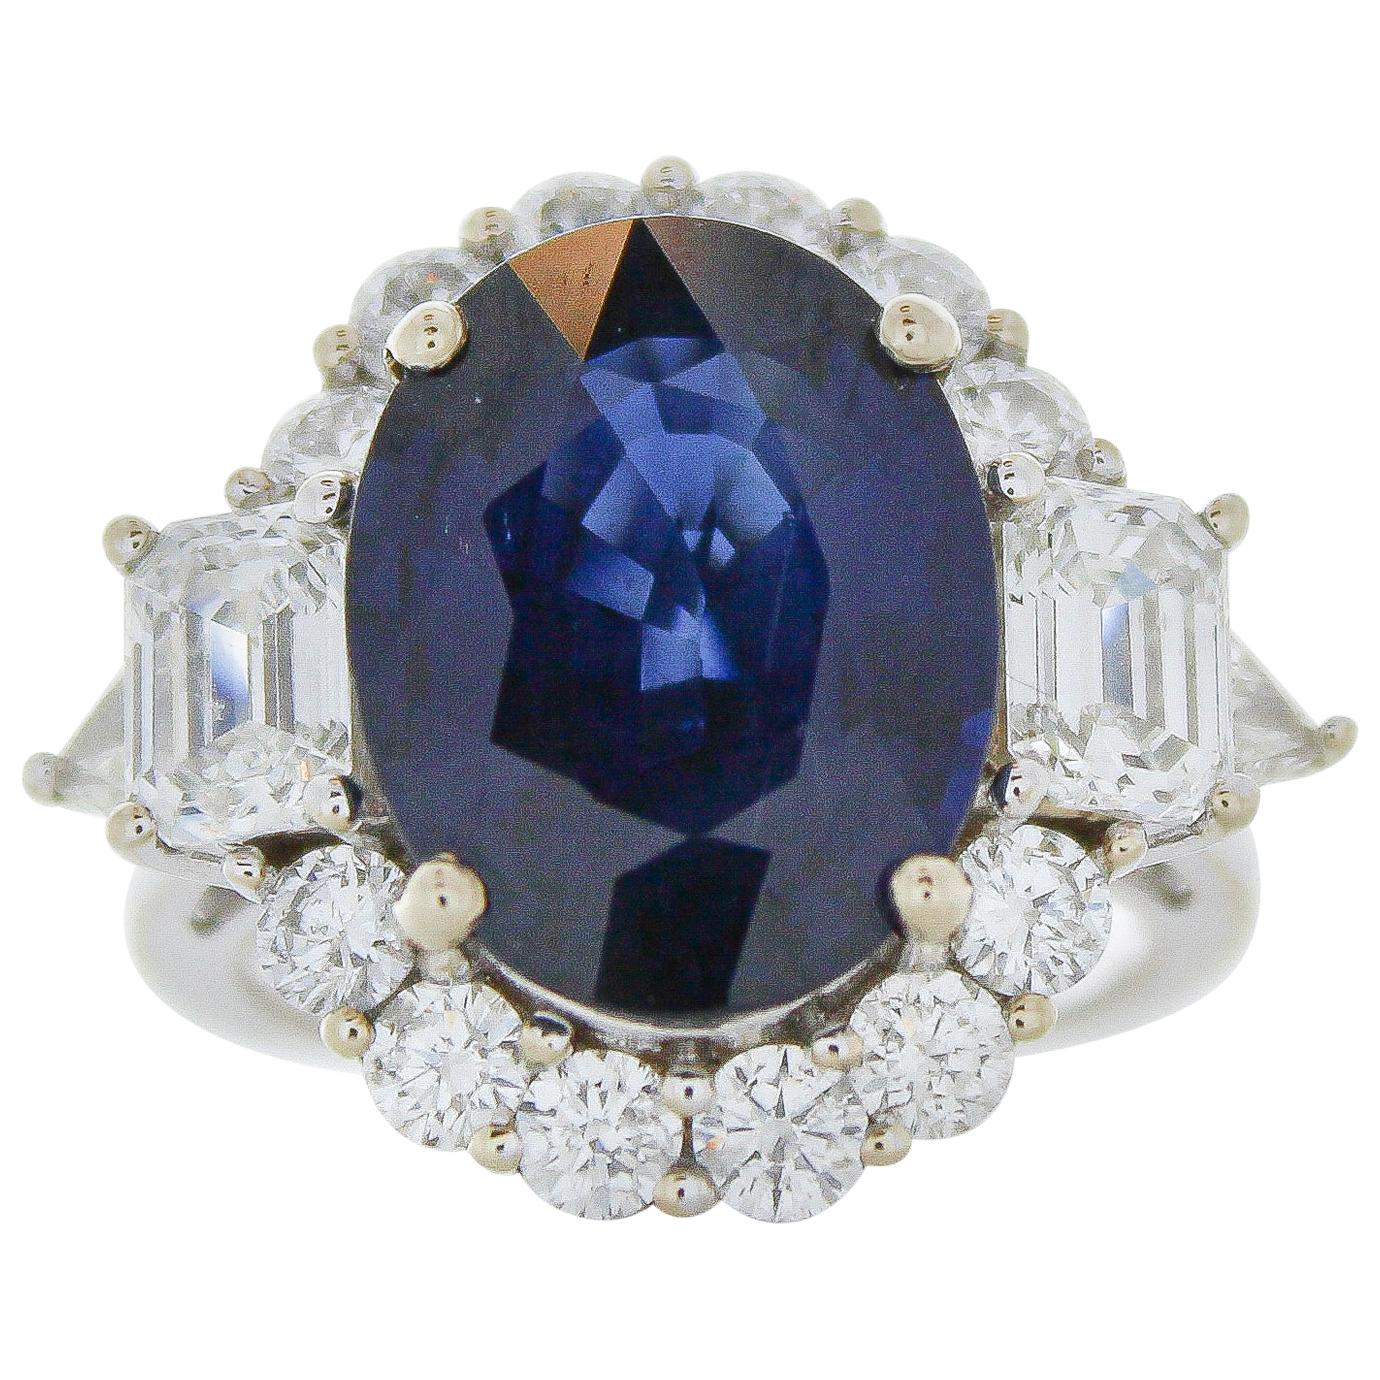 GIA Certified 8.74 Carat Oval Sapphire and Diamond Ring in 18 Karat White Gold